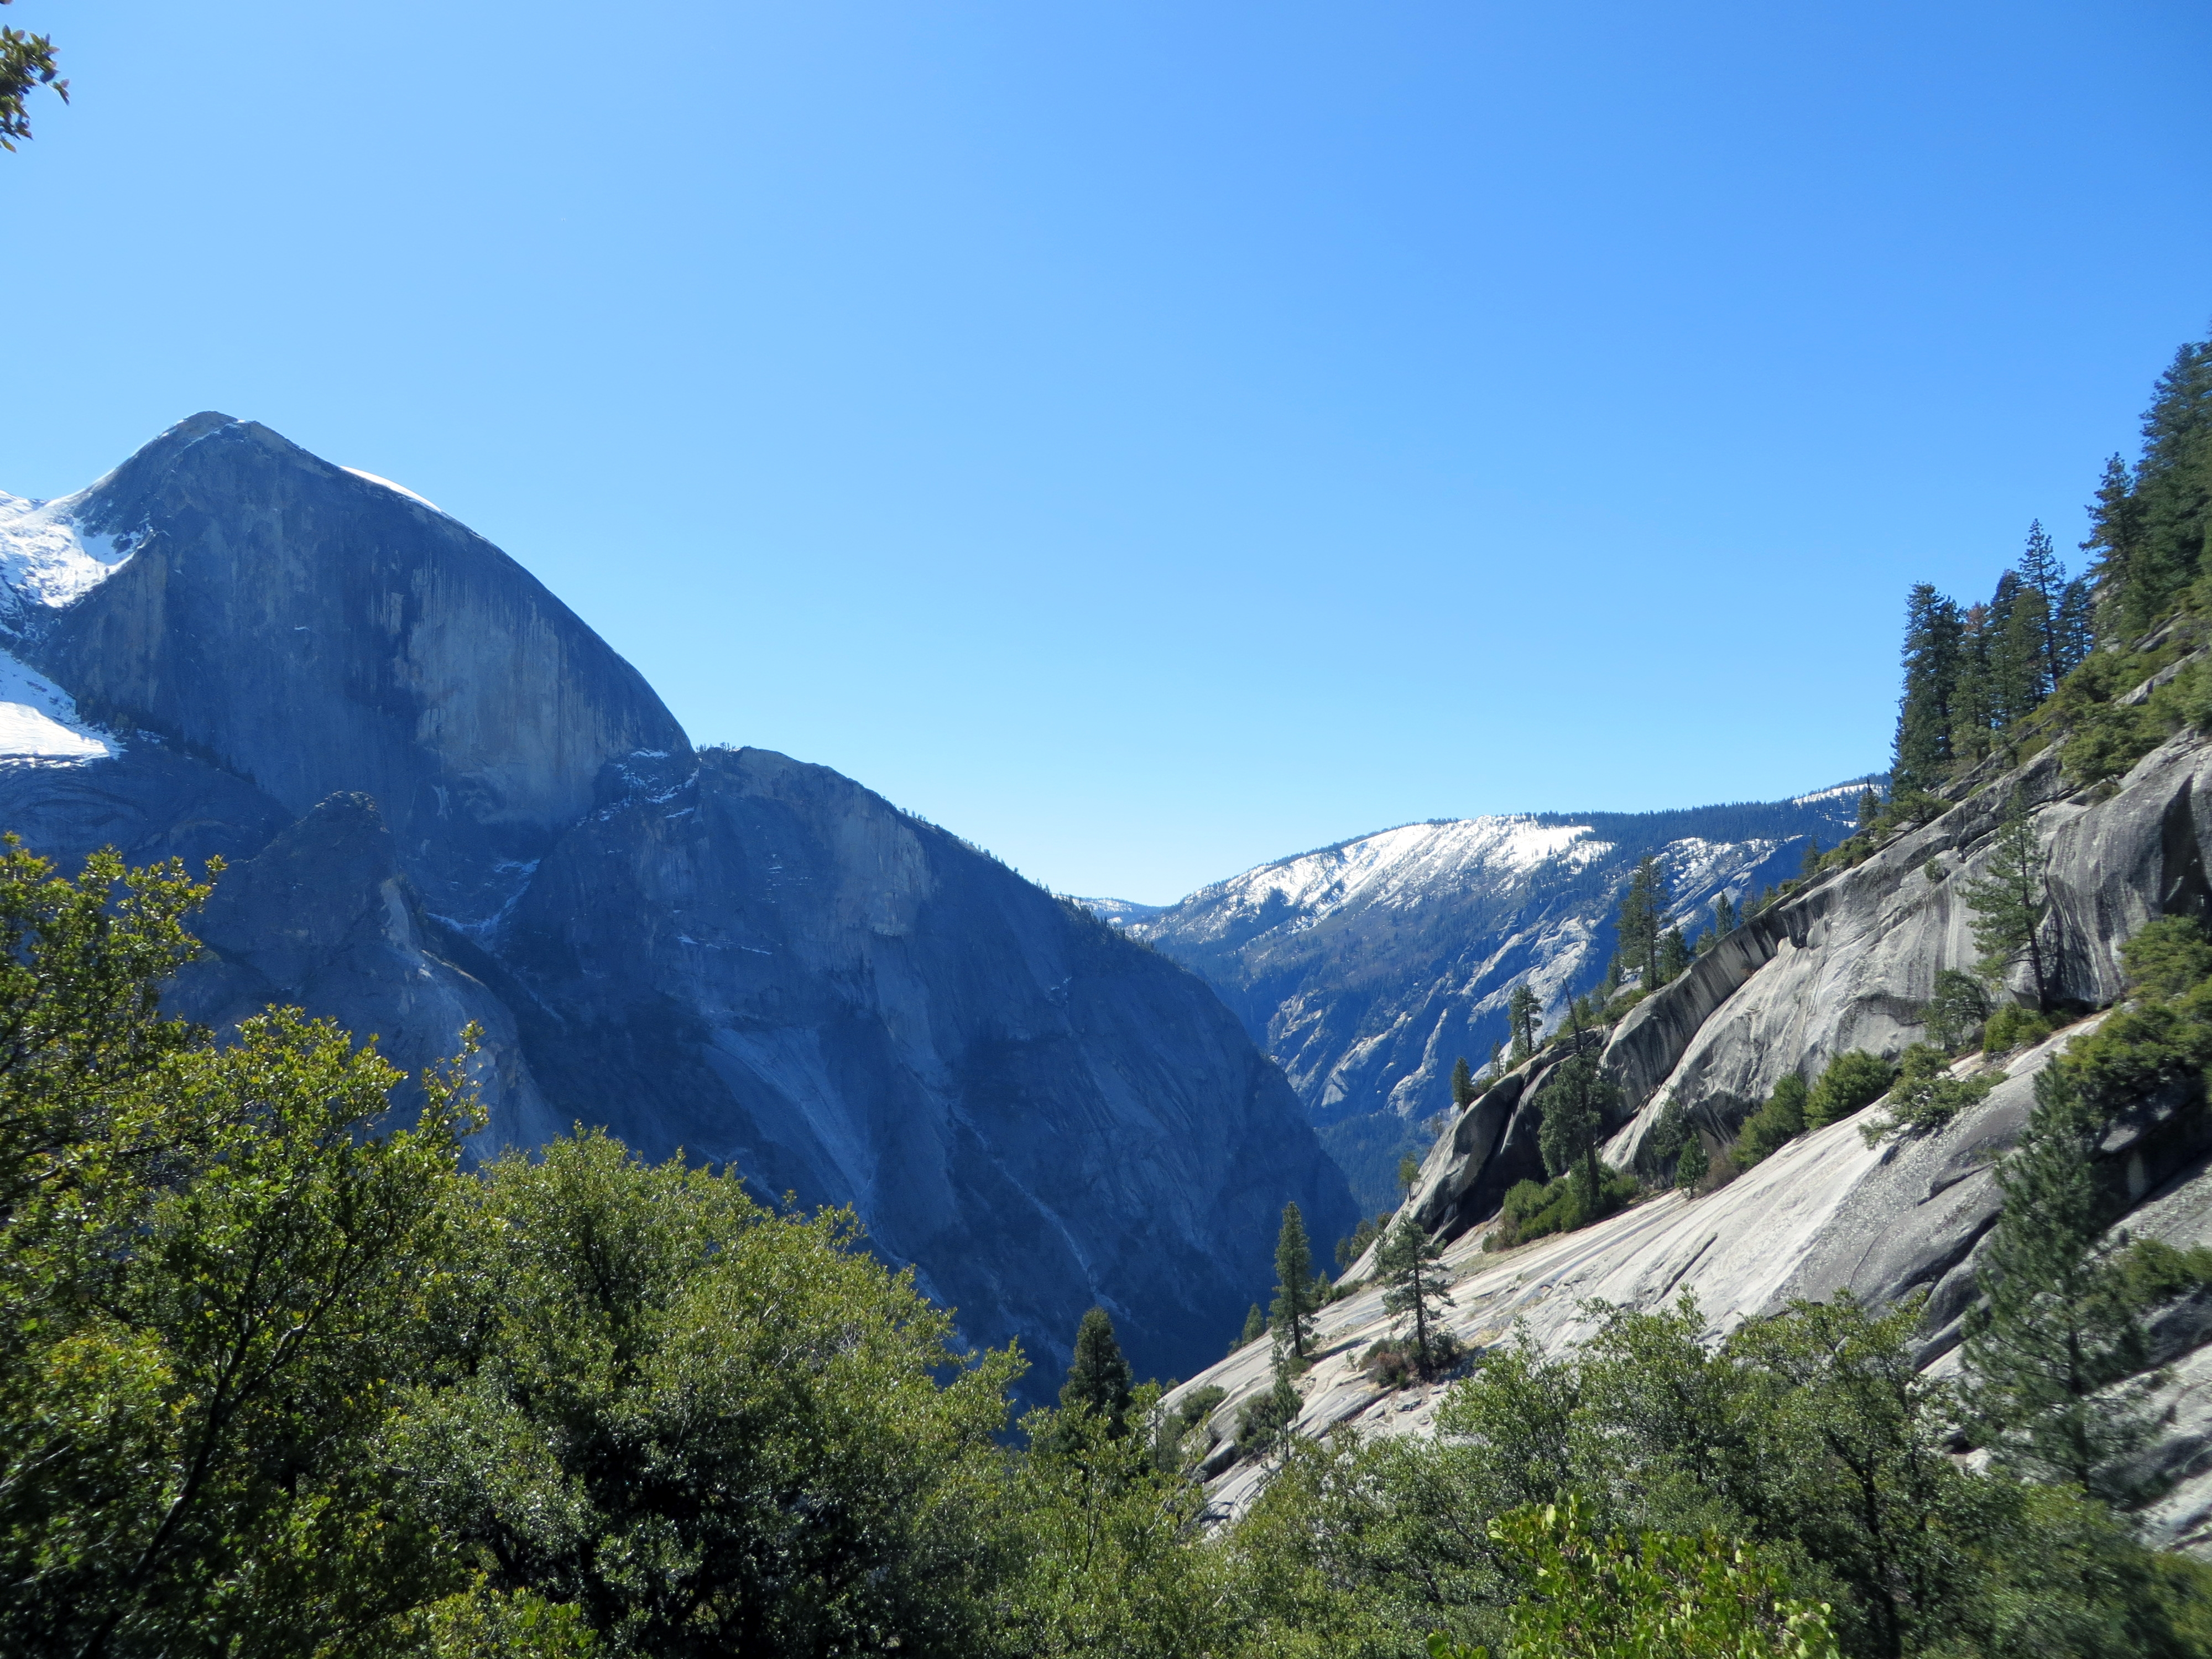 The sheer northern face of Half Dome looms menacingly over Lower Tenaya Canyon, as seen from near the top of the Snow Creek switchbacks.  (photo by D. Speredelozzi)